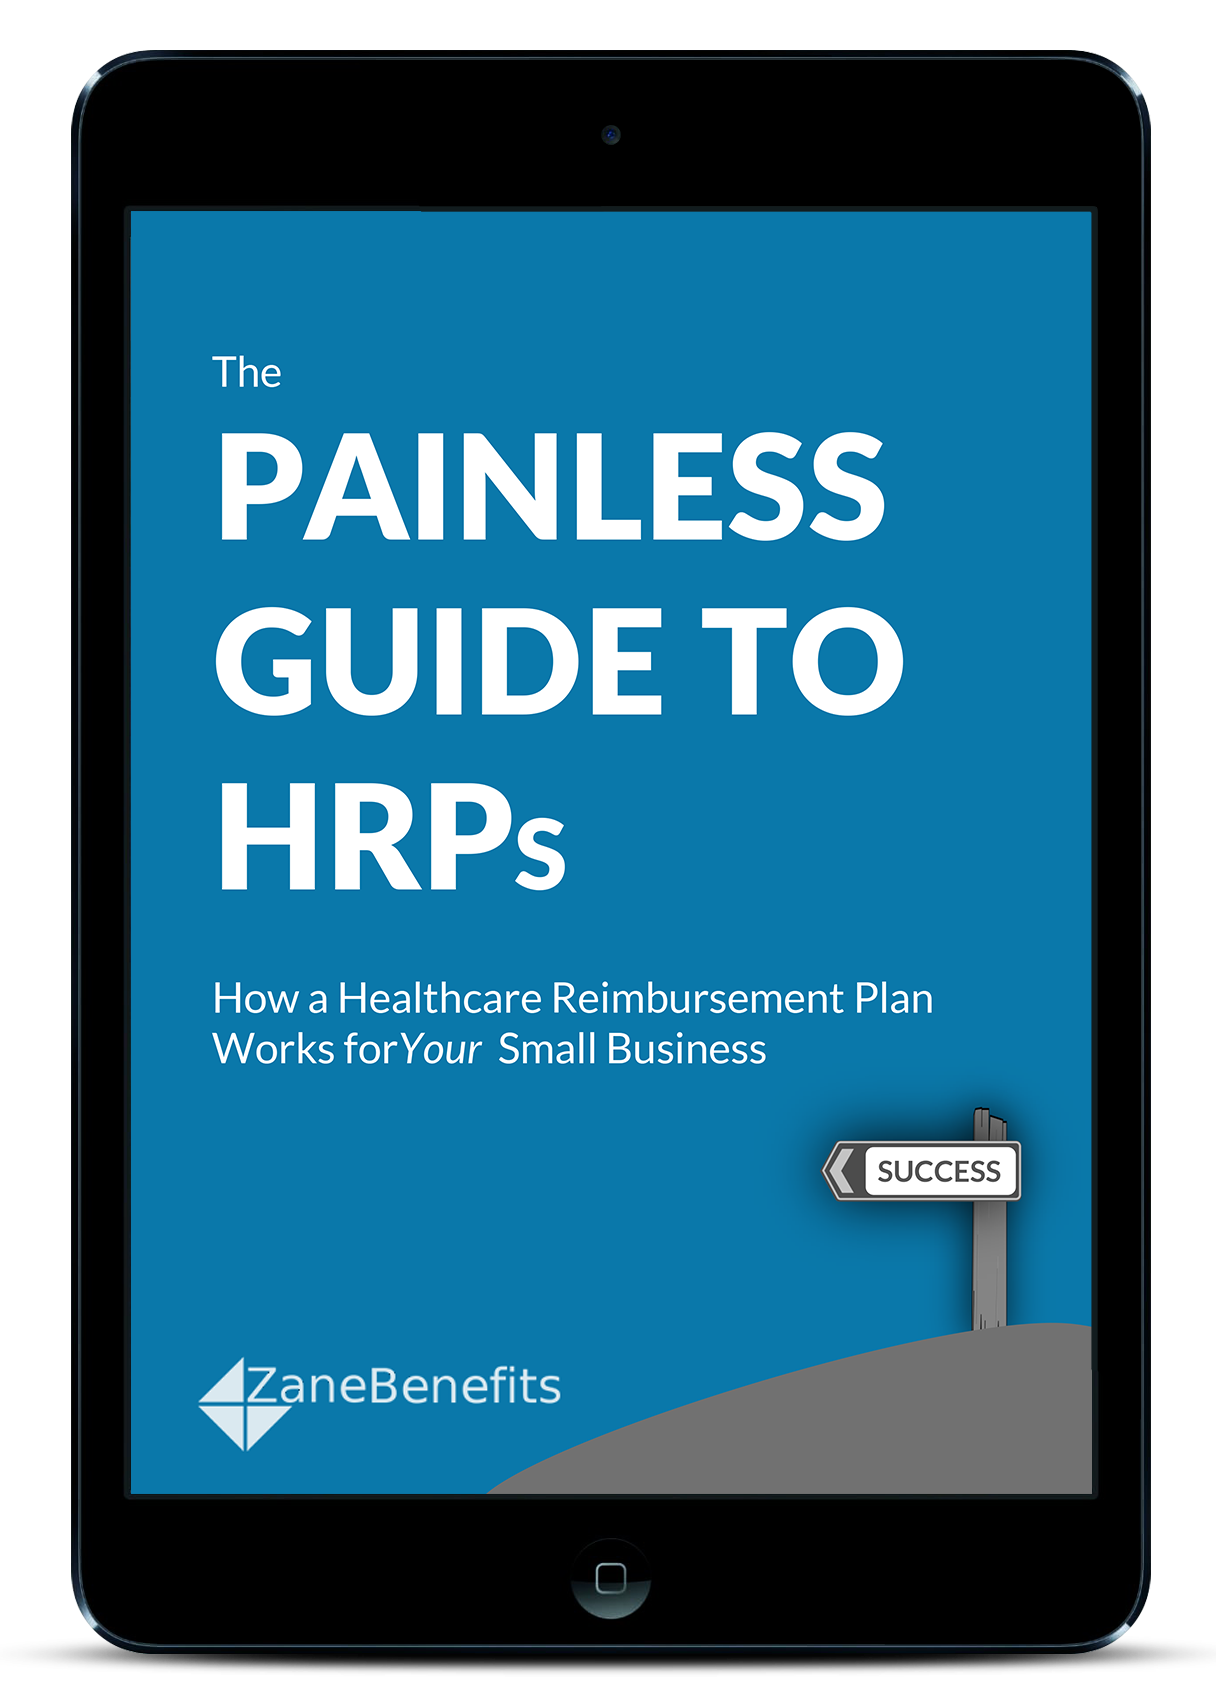 The Painless Guide to HRPs